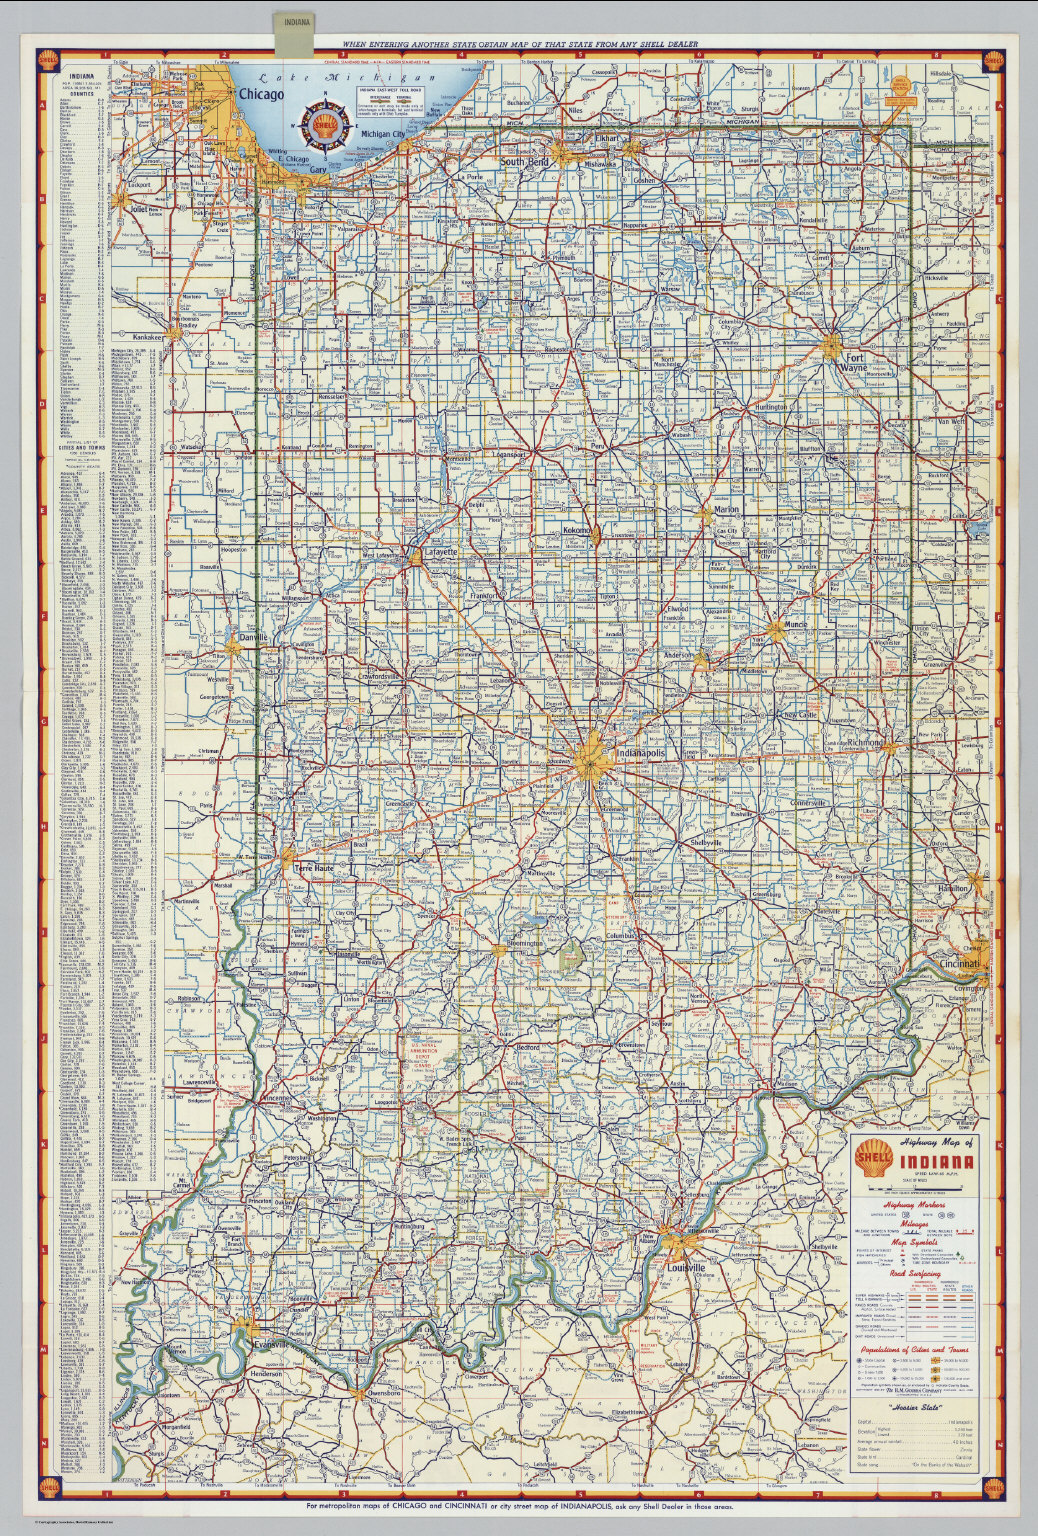 Highway Map Of Indiana Shell Highway Map of Indiana.   David Rumsey Historical Map Collection